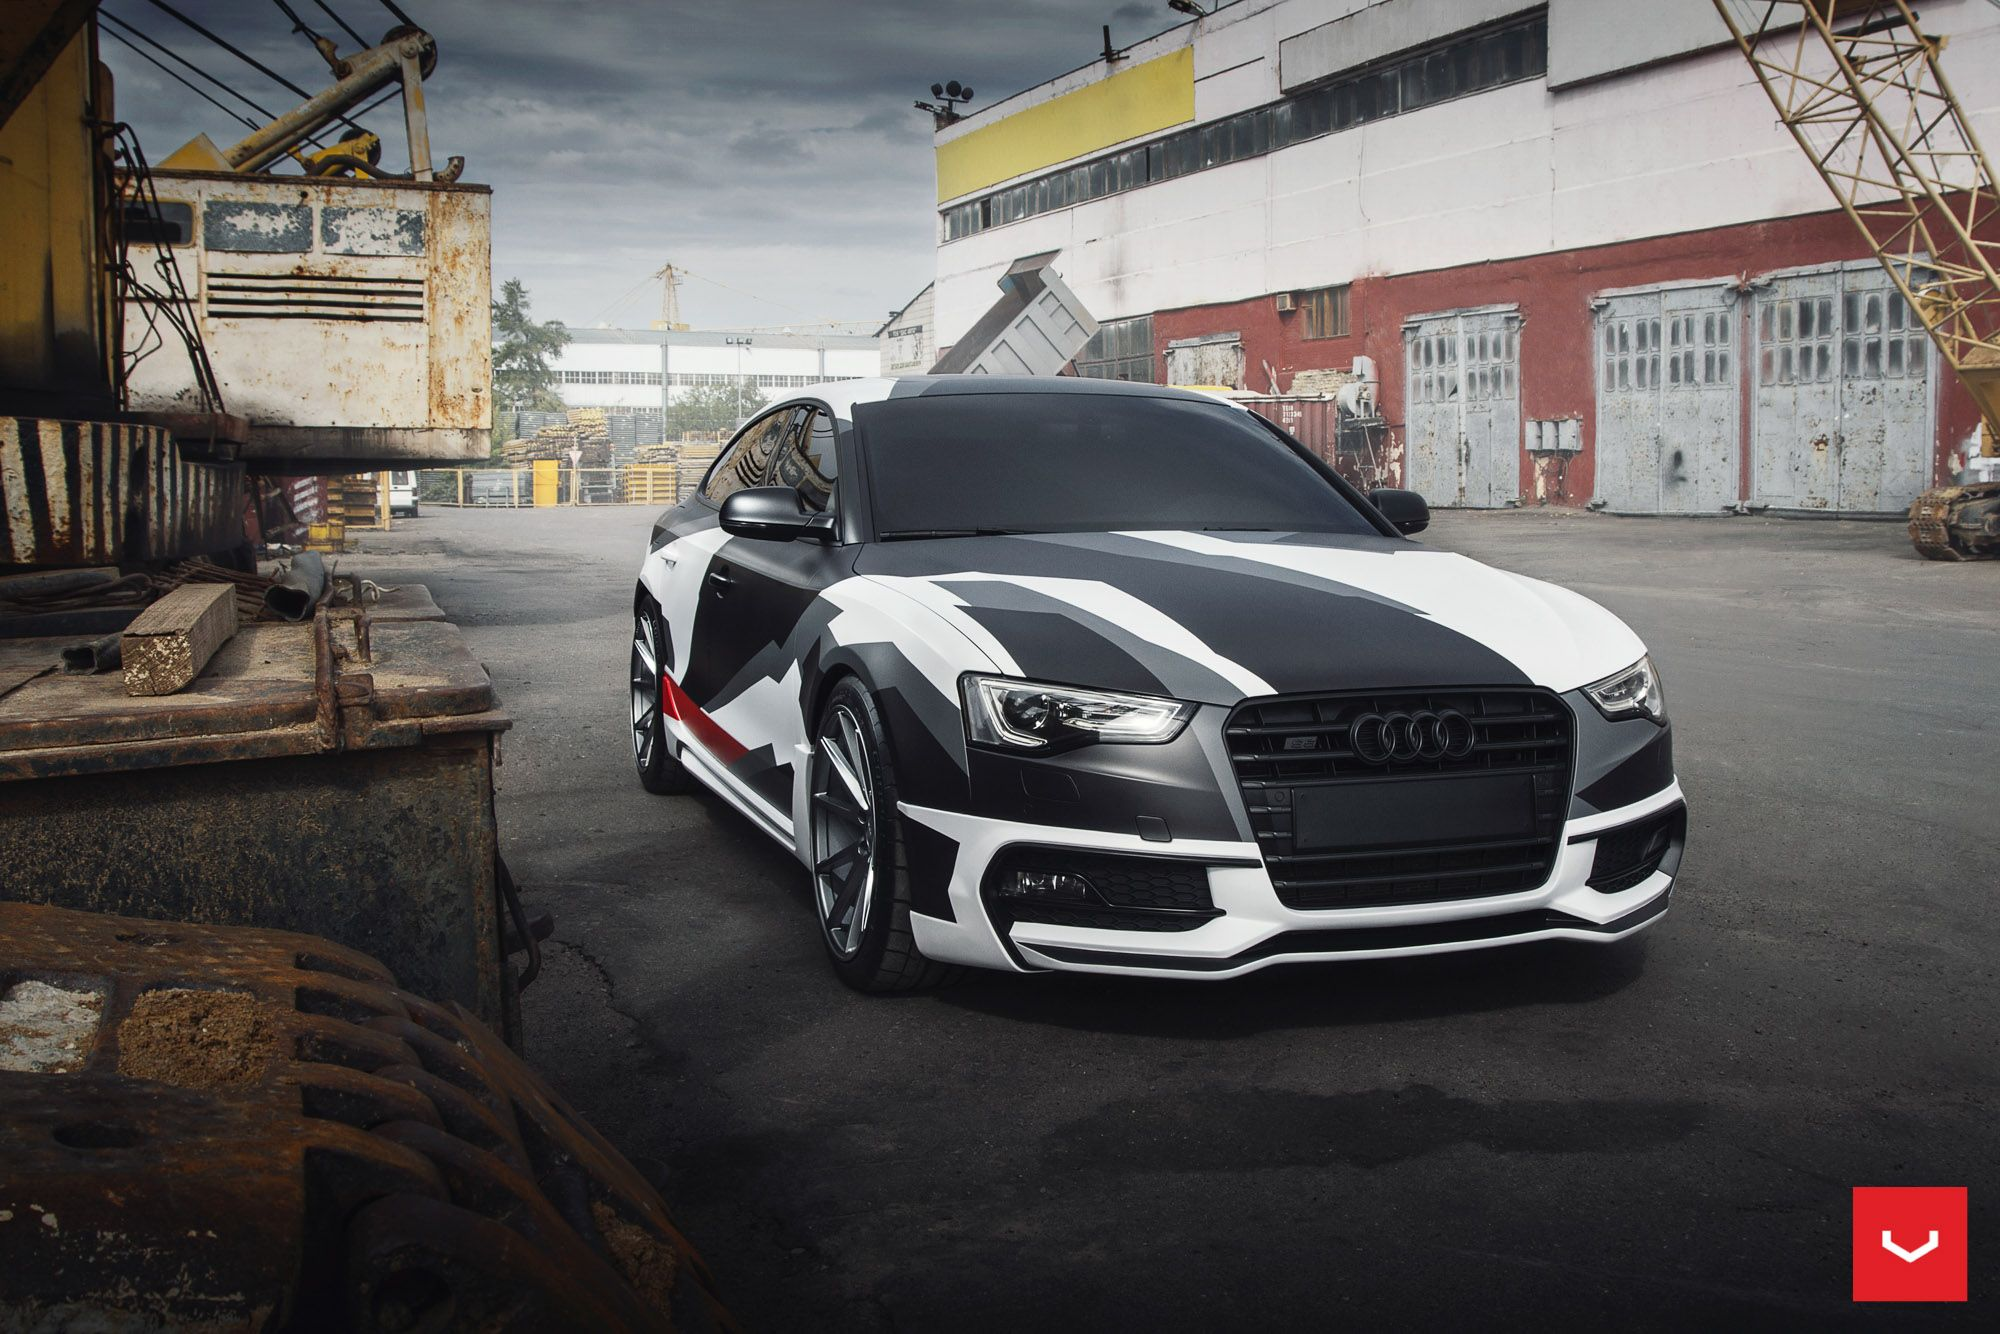 Audi q7 suv vossen wheels tuning cars wallpaper - Love The Camo Wrap And Of Course The Graphite Vossen Wheels On This Audi Usa Coupe